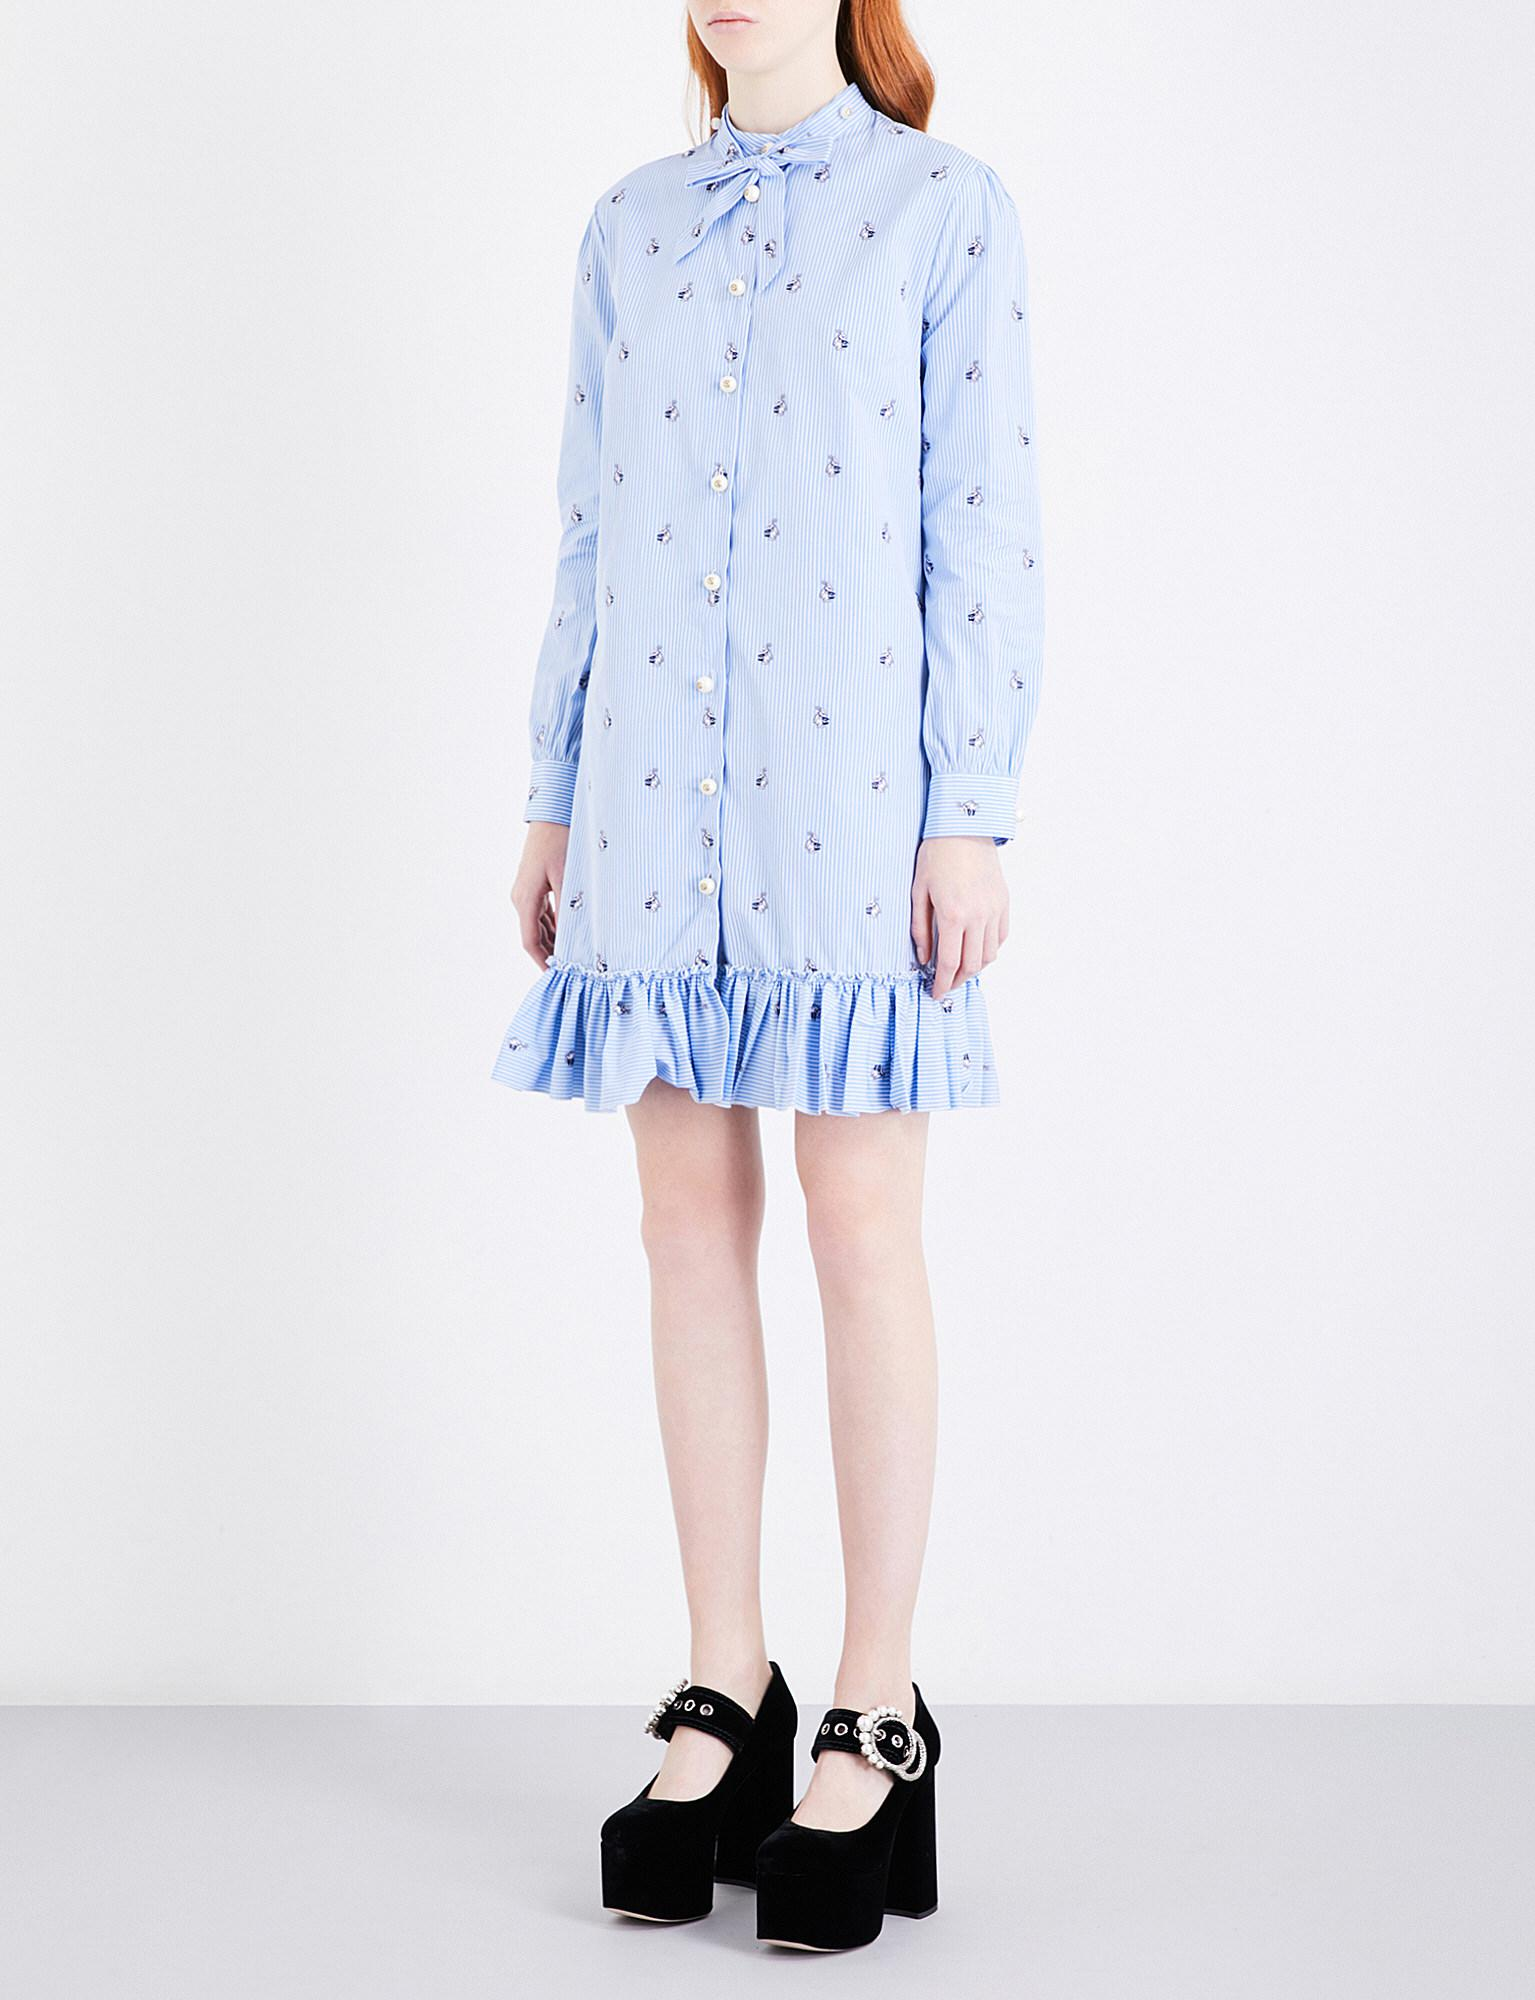 Lyst Gucci Rabbit embroidered Cotton Dress in Blue